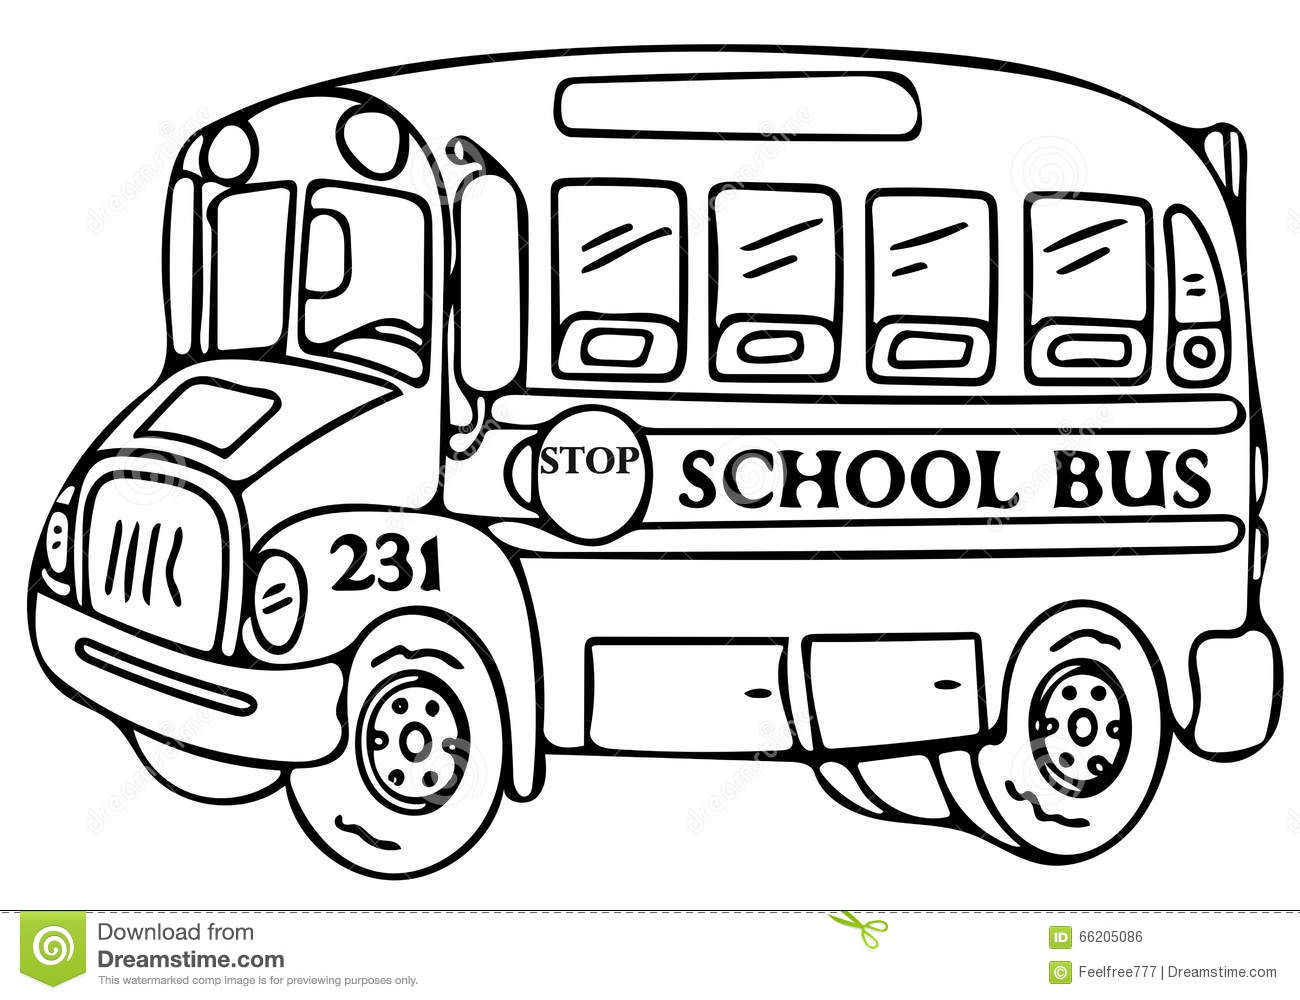 School bus coloring pages stock illustration. Illustration